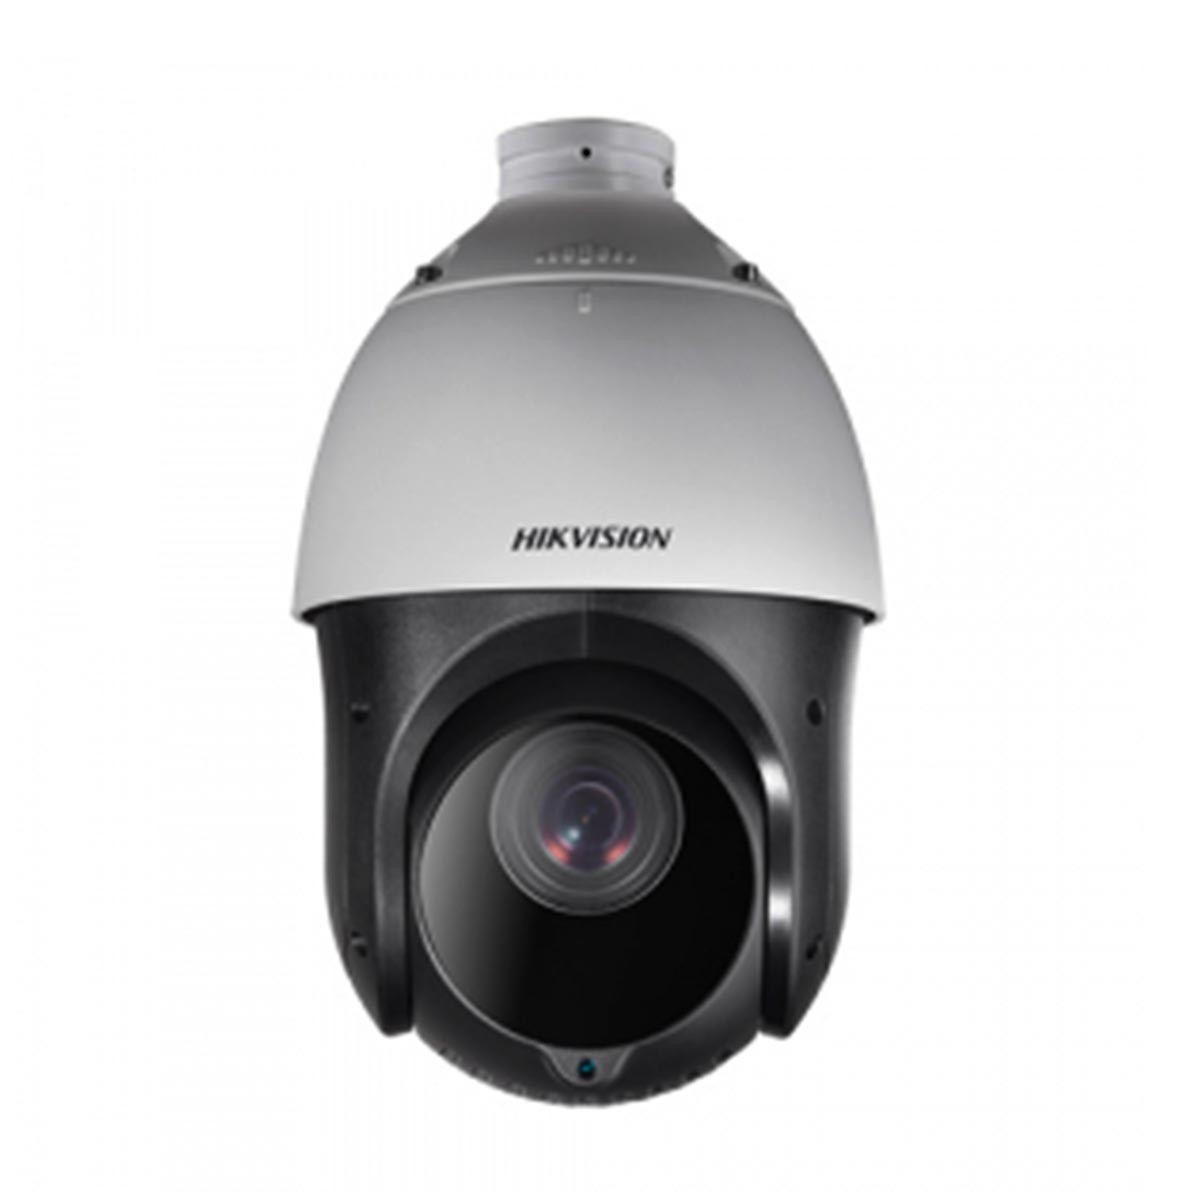 CÂMERA SPEED DOME HIKVISION  100 MTS 2MP 25X ZOOM OPTICO 16X ZOOM DIGITAL DS-2AE4225TI-D